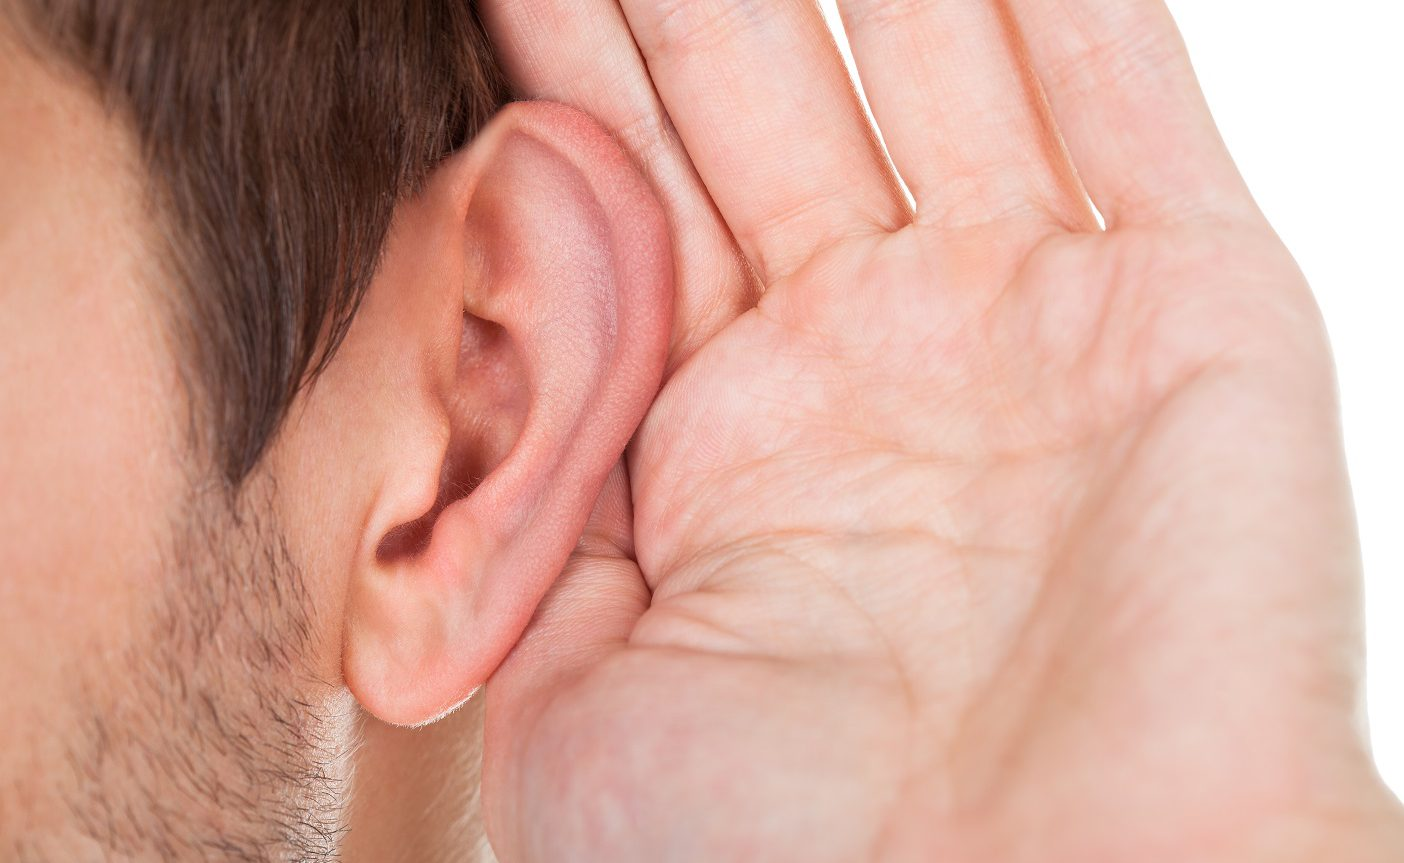 Hearing Loss is much more common than most people realize